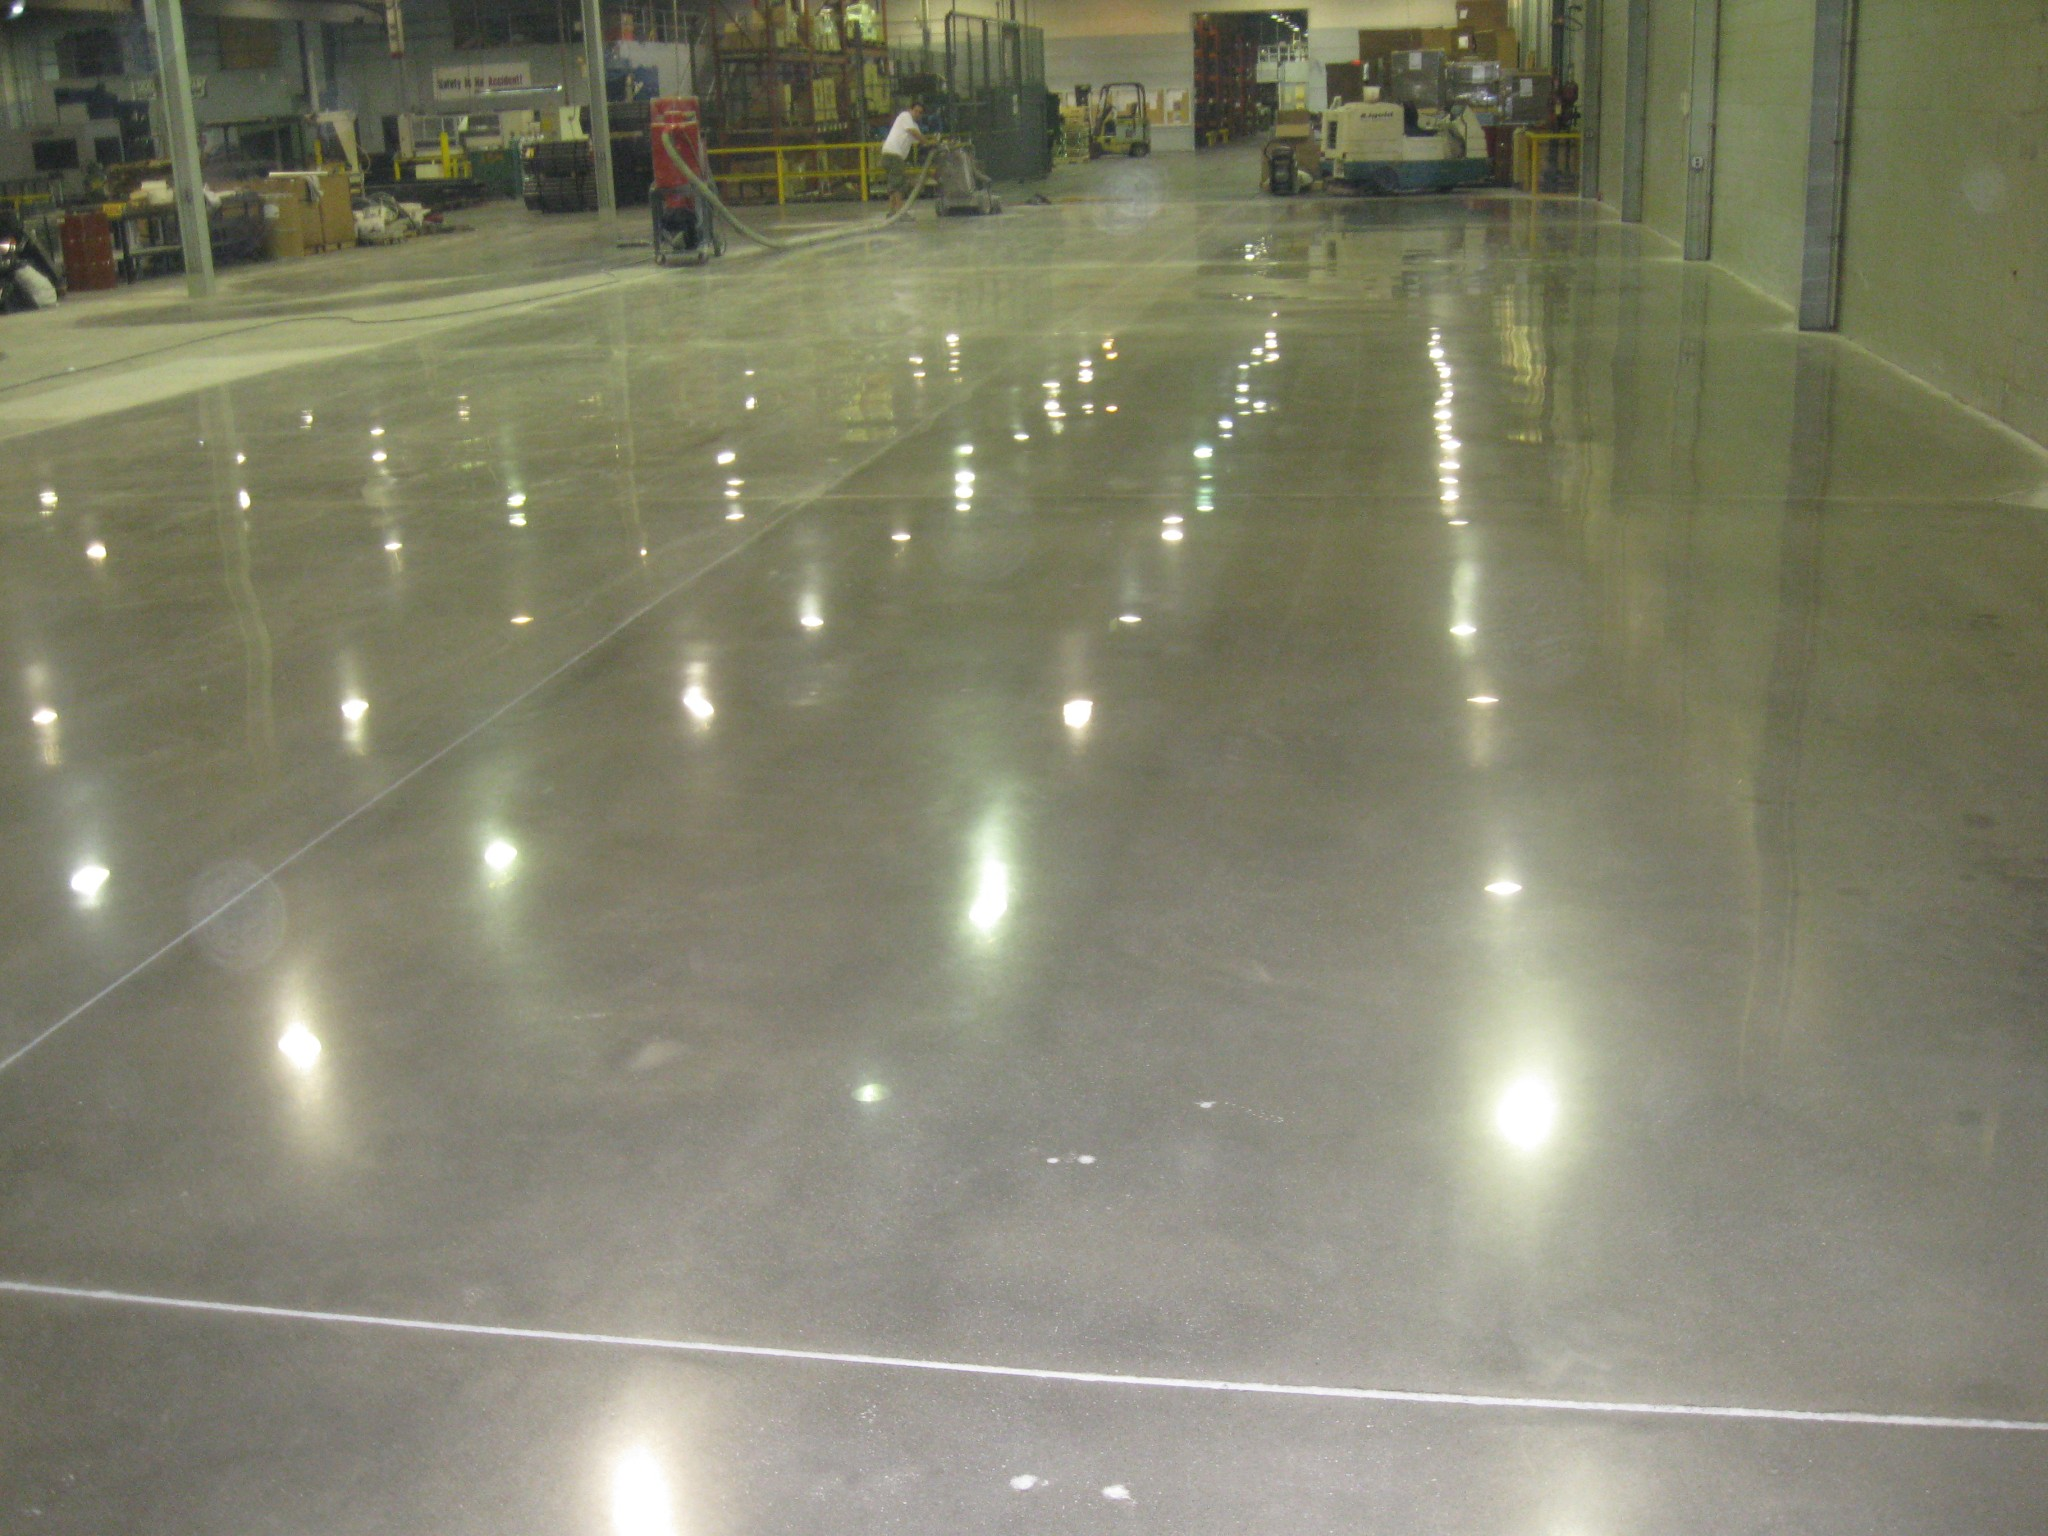 Ellcon industrial concrete polished floor by liquid floors ellcon industrial concrete polished floor by liquid floors greenville south carolina dailygadgetfo Gallery